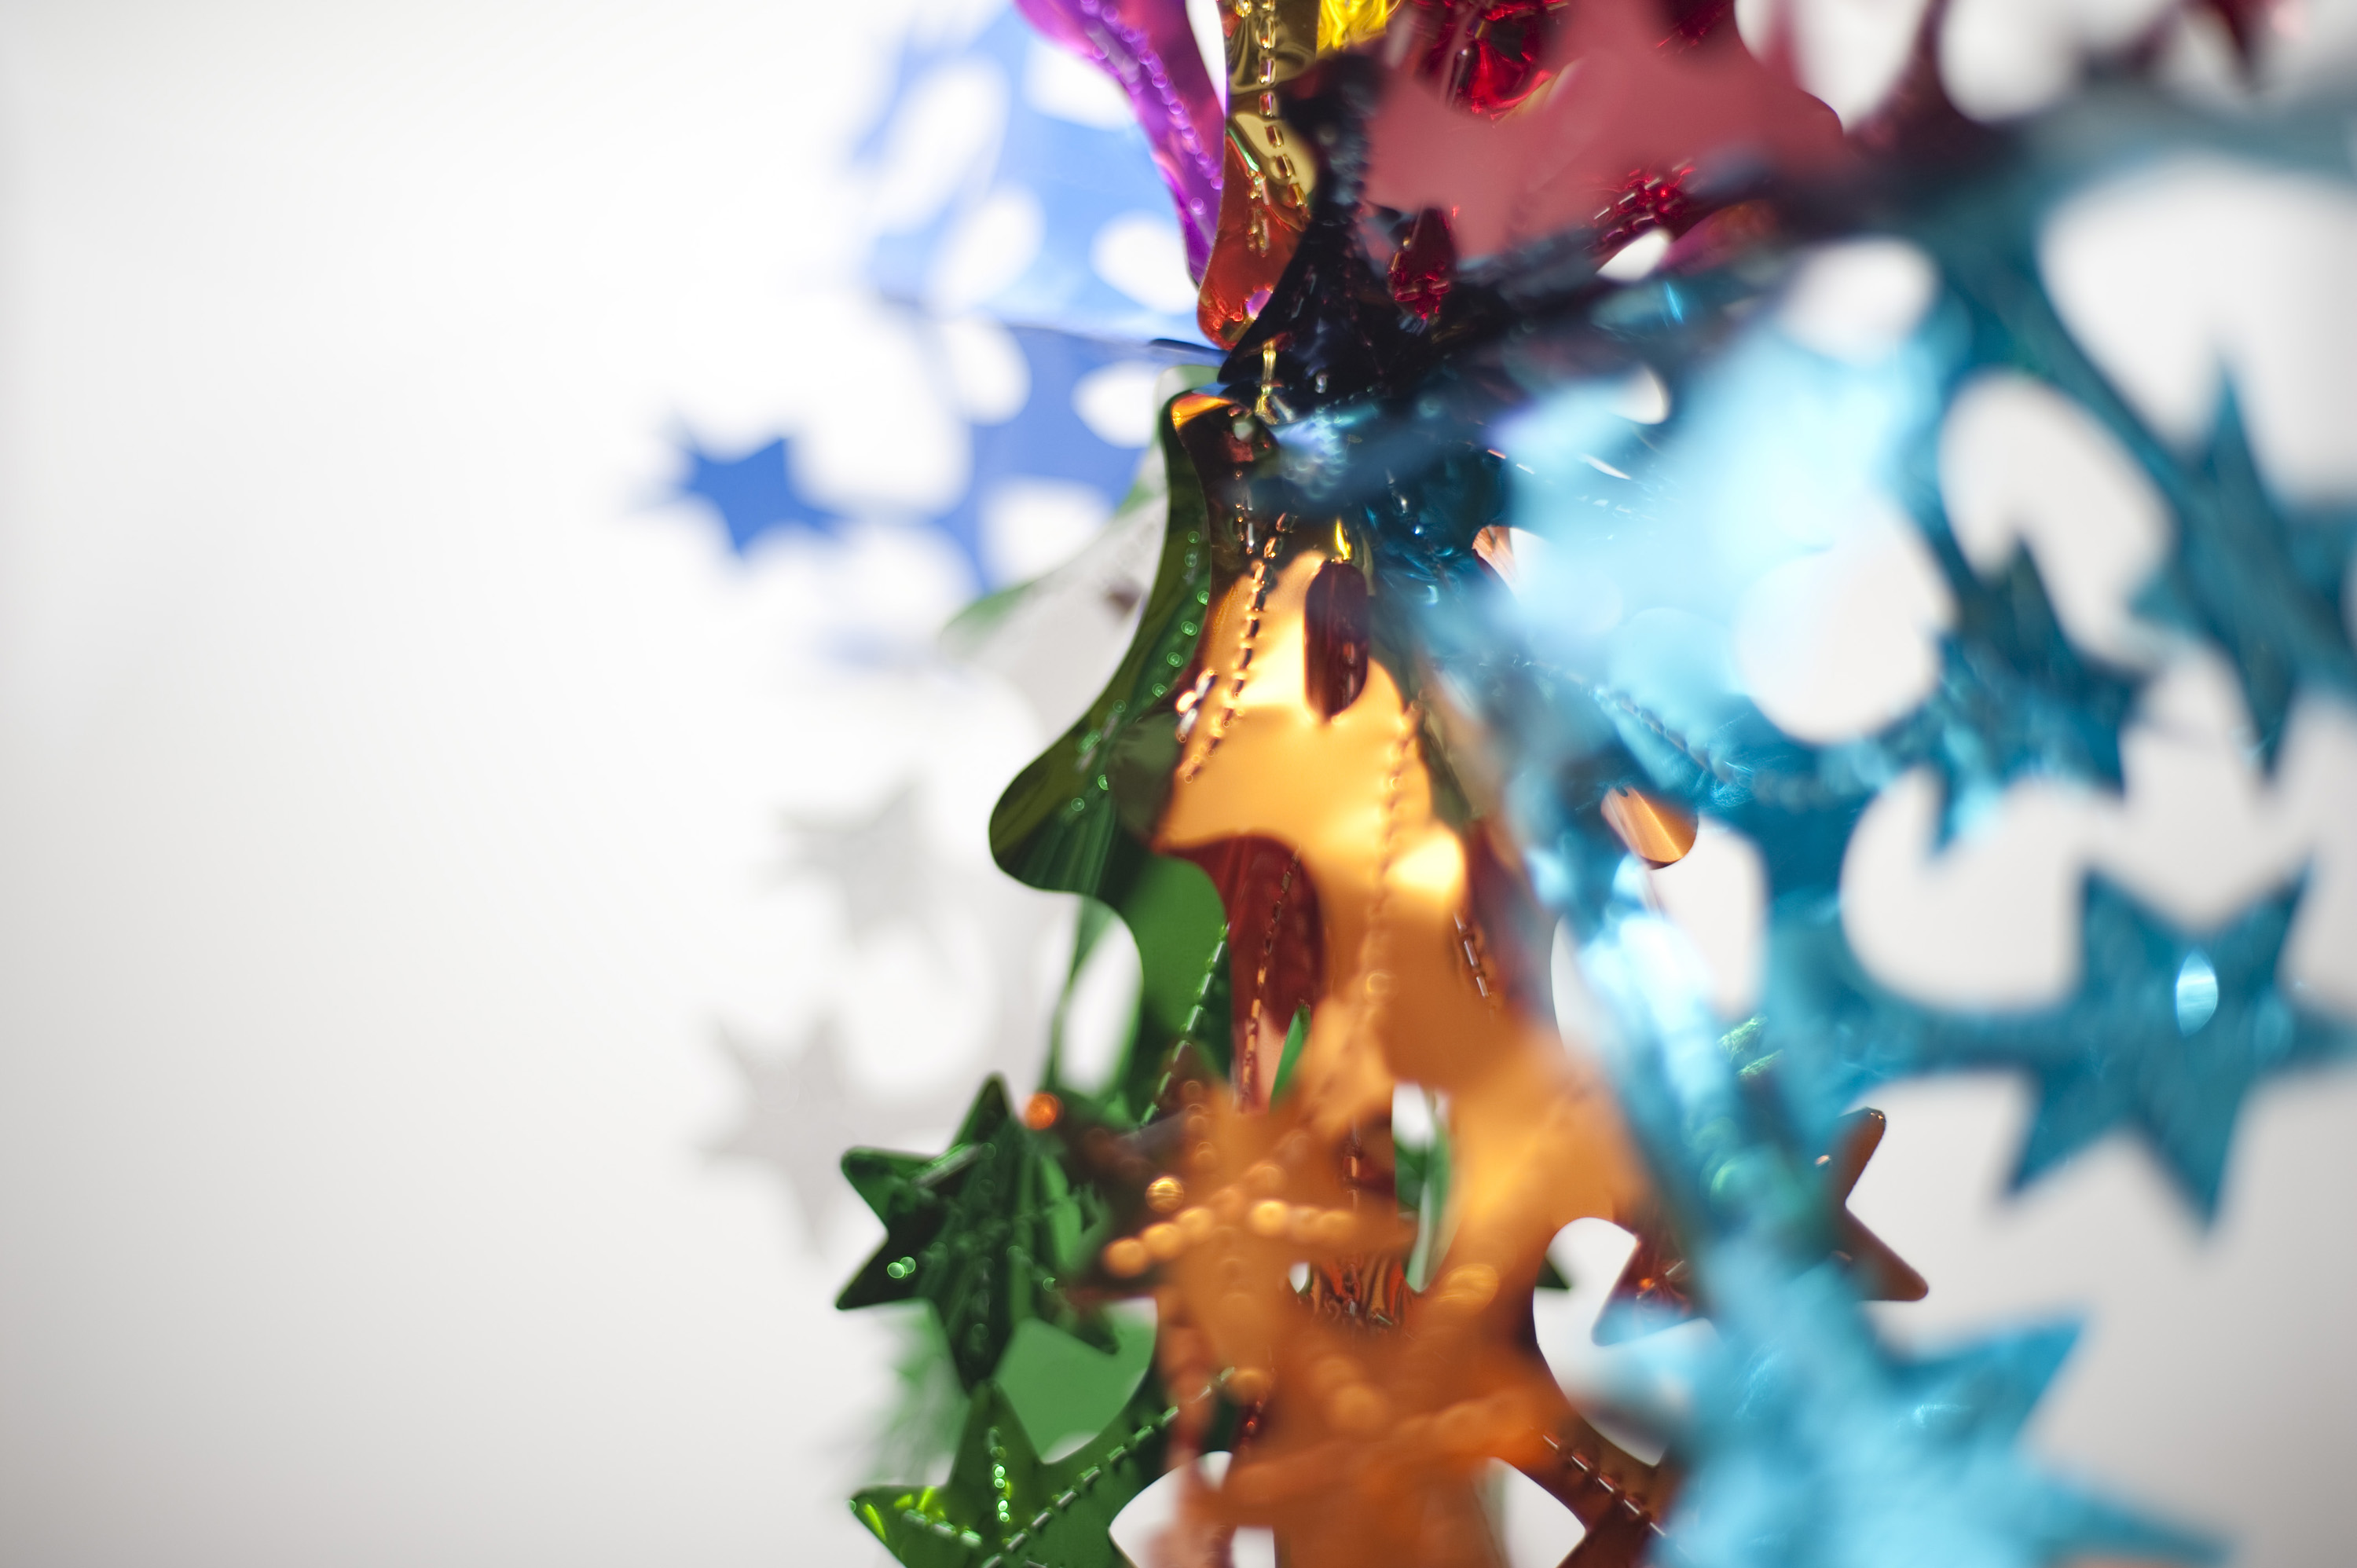 a colorful abstract image of a christmas foil decoration on a white background